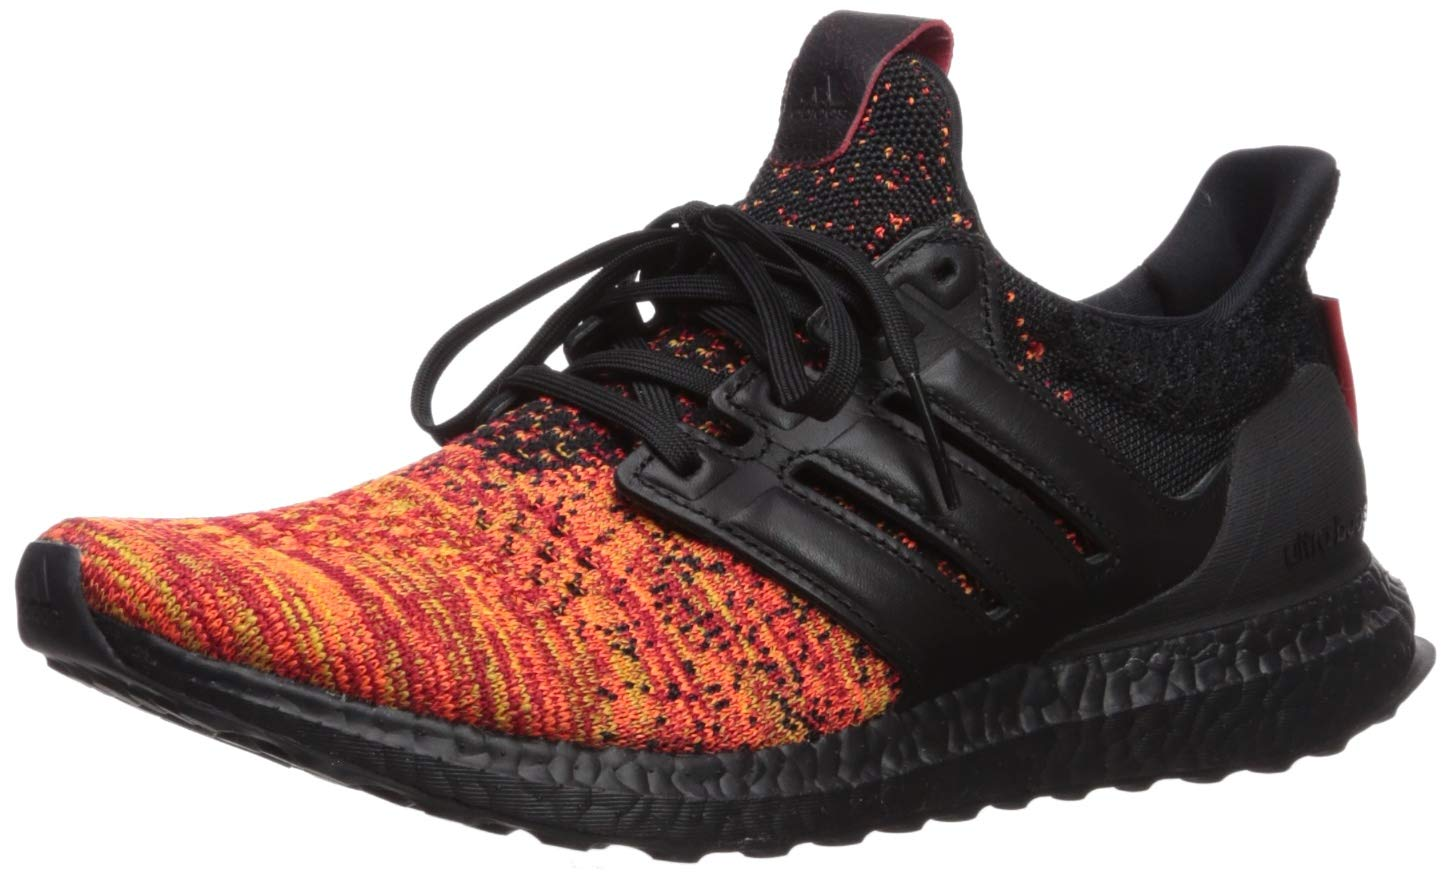 adidas x Game of Thrones Men's Ultraboost Running Shoes, House Targaryen, 8.5 M US by adidas (Image #1)